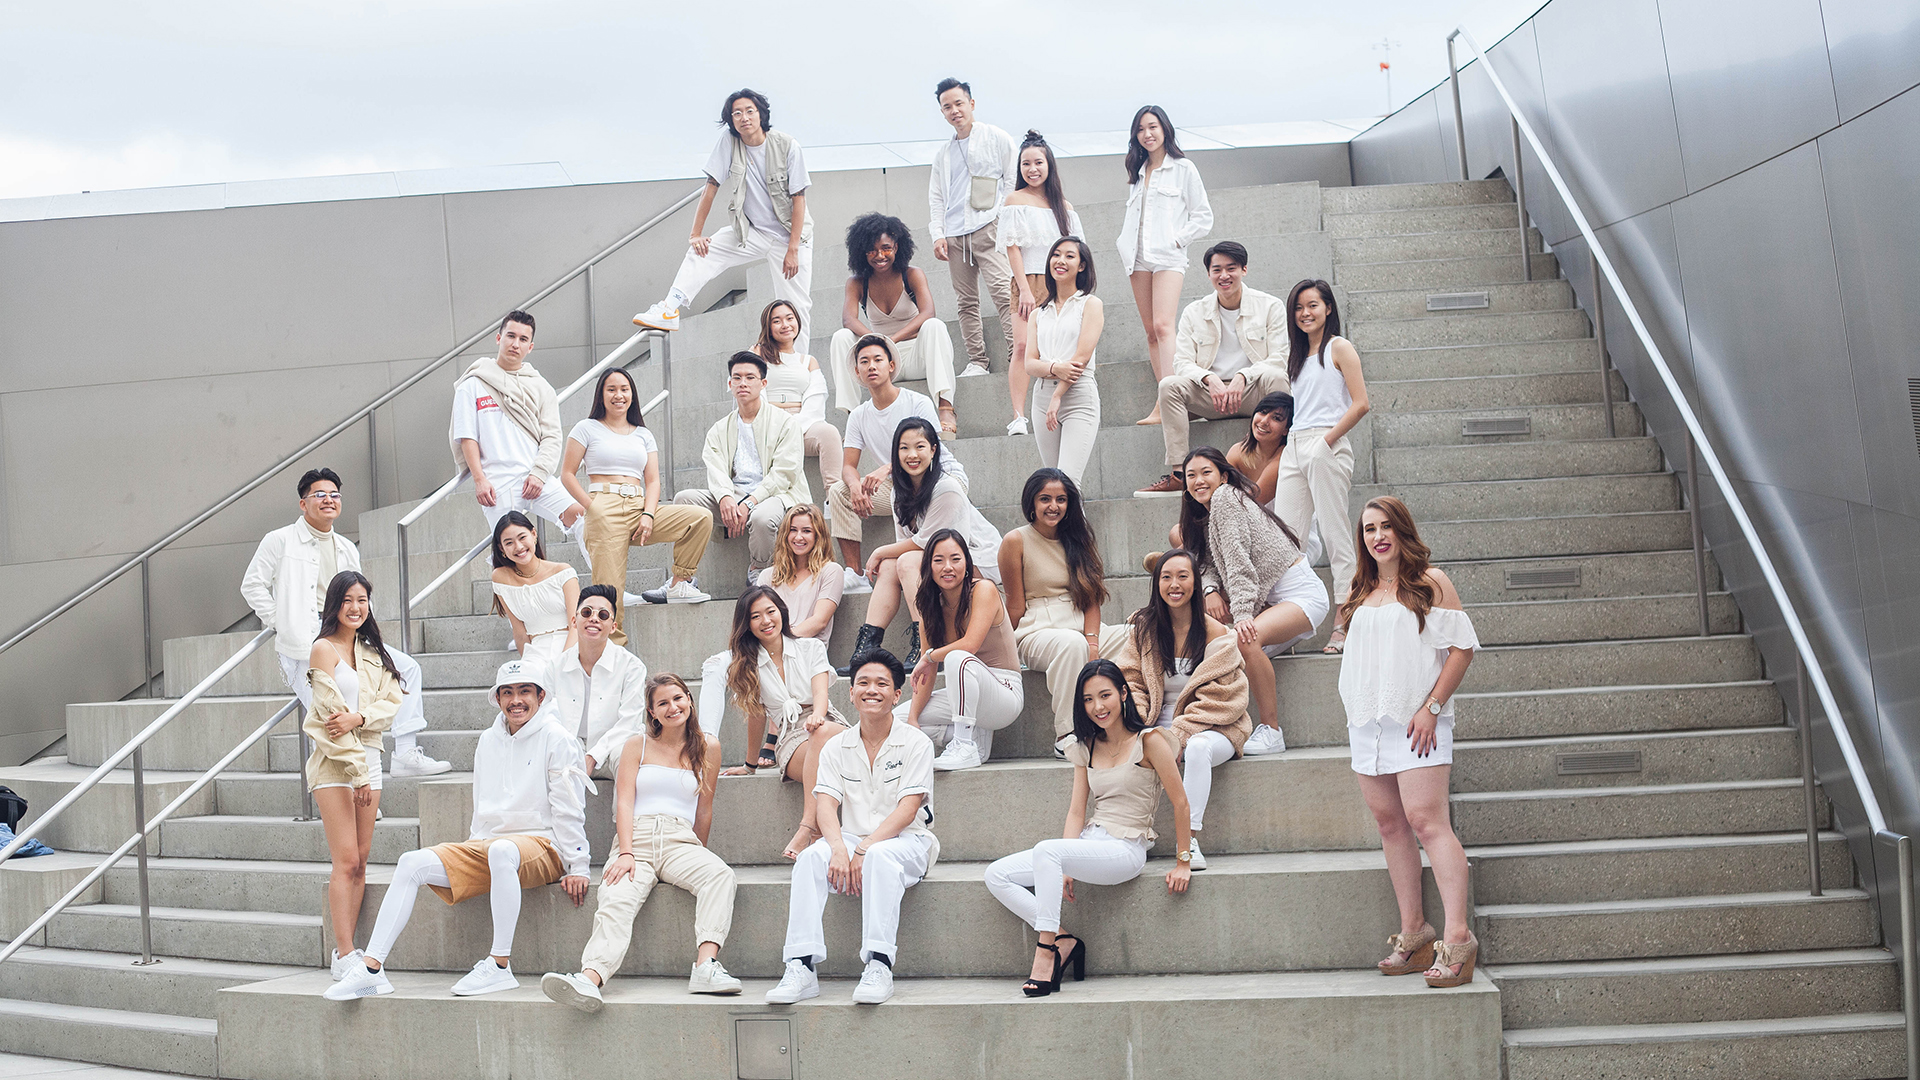 A group of dancers dressed in white standing on a sloping set of concrete stairs